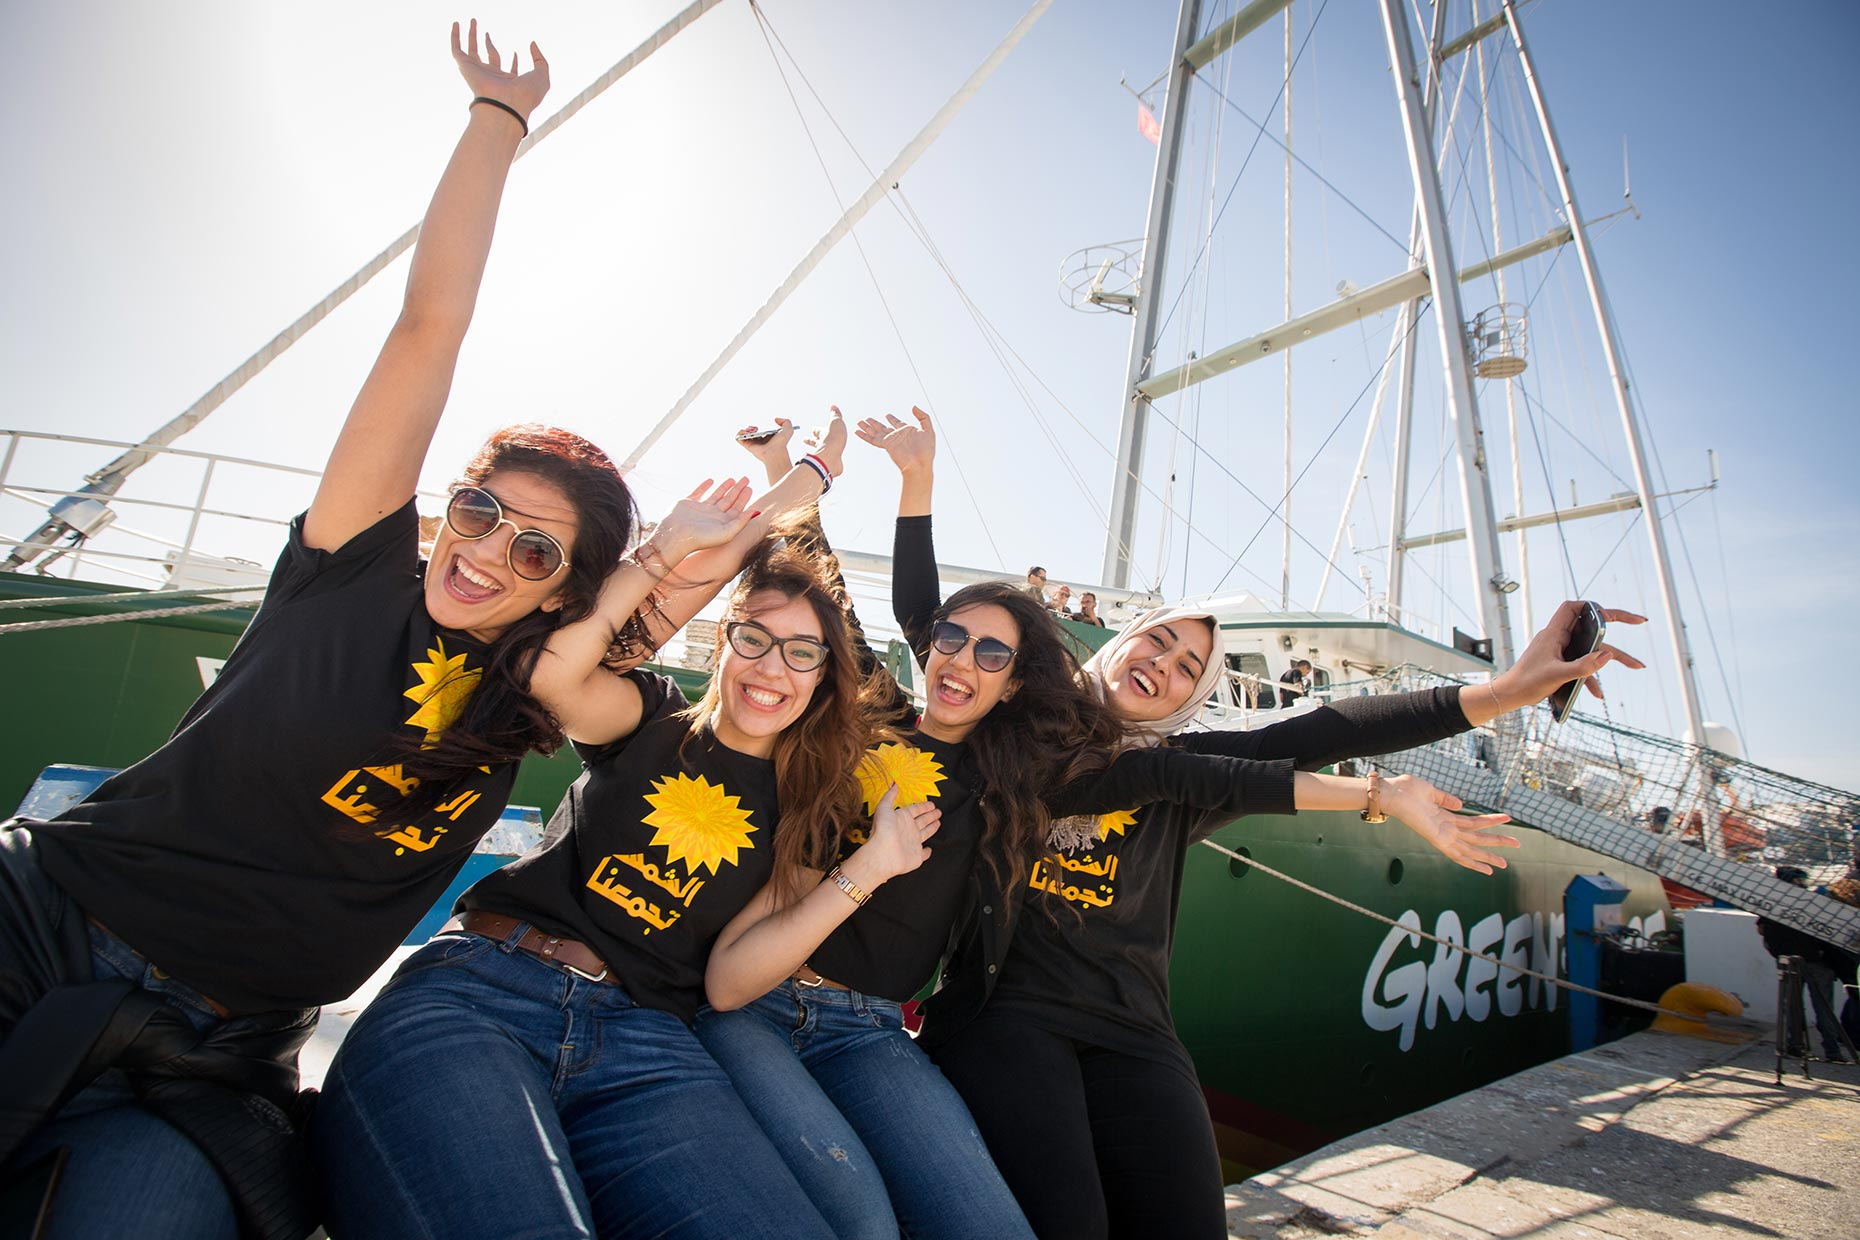 Greenpeace ship Rainbow Warrior and activists, by Scotland Greenpeace photographer